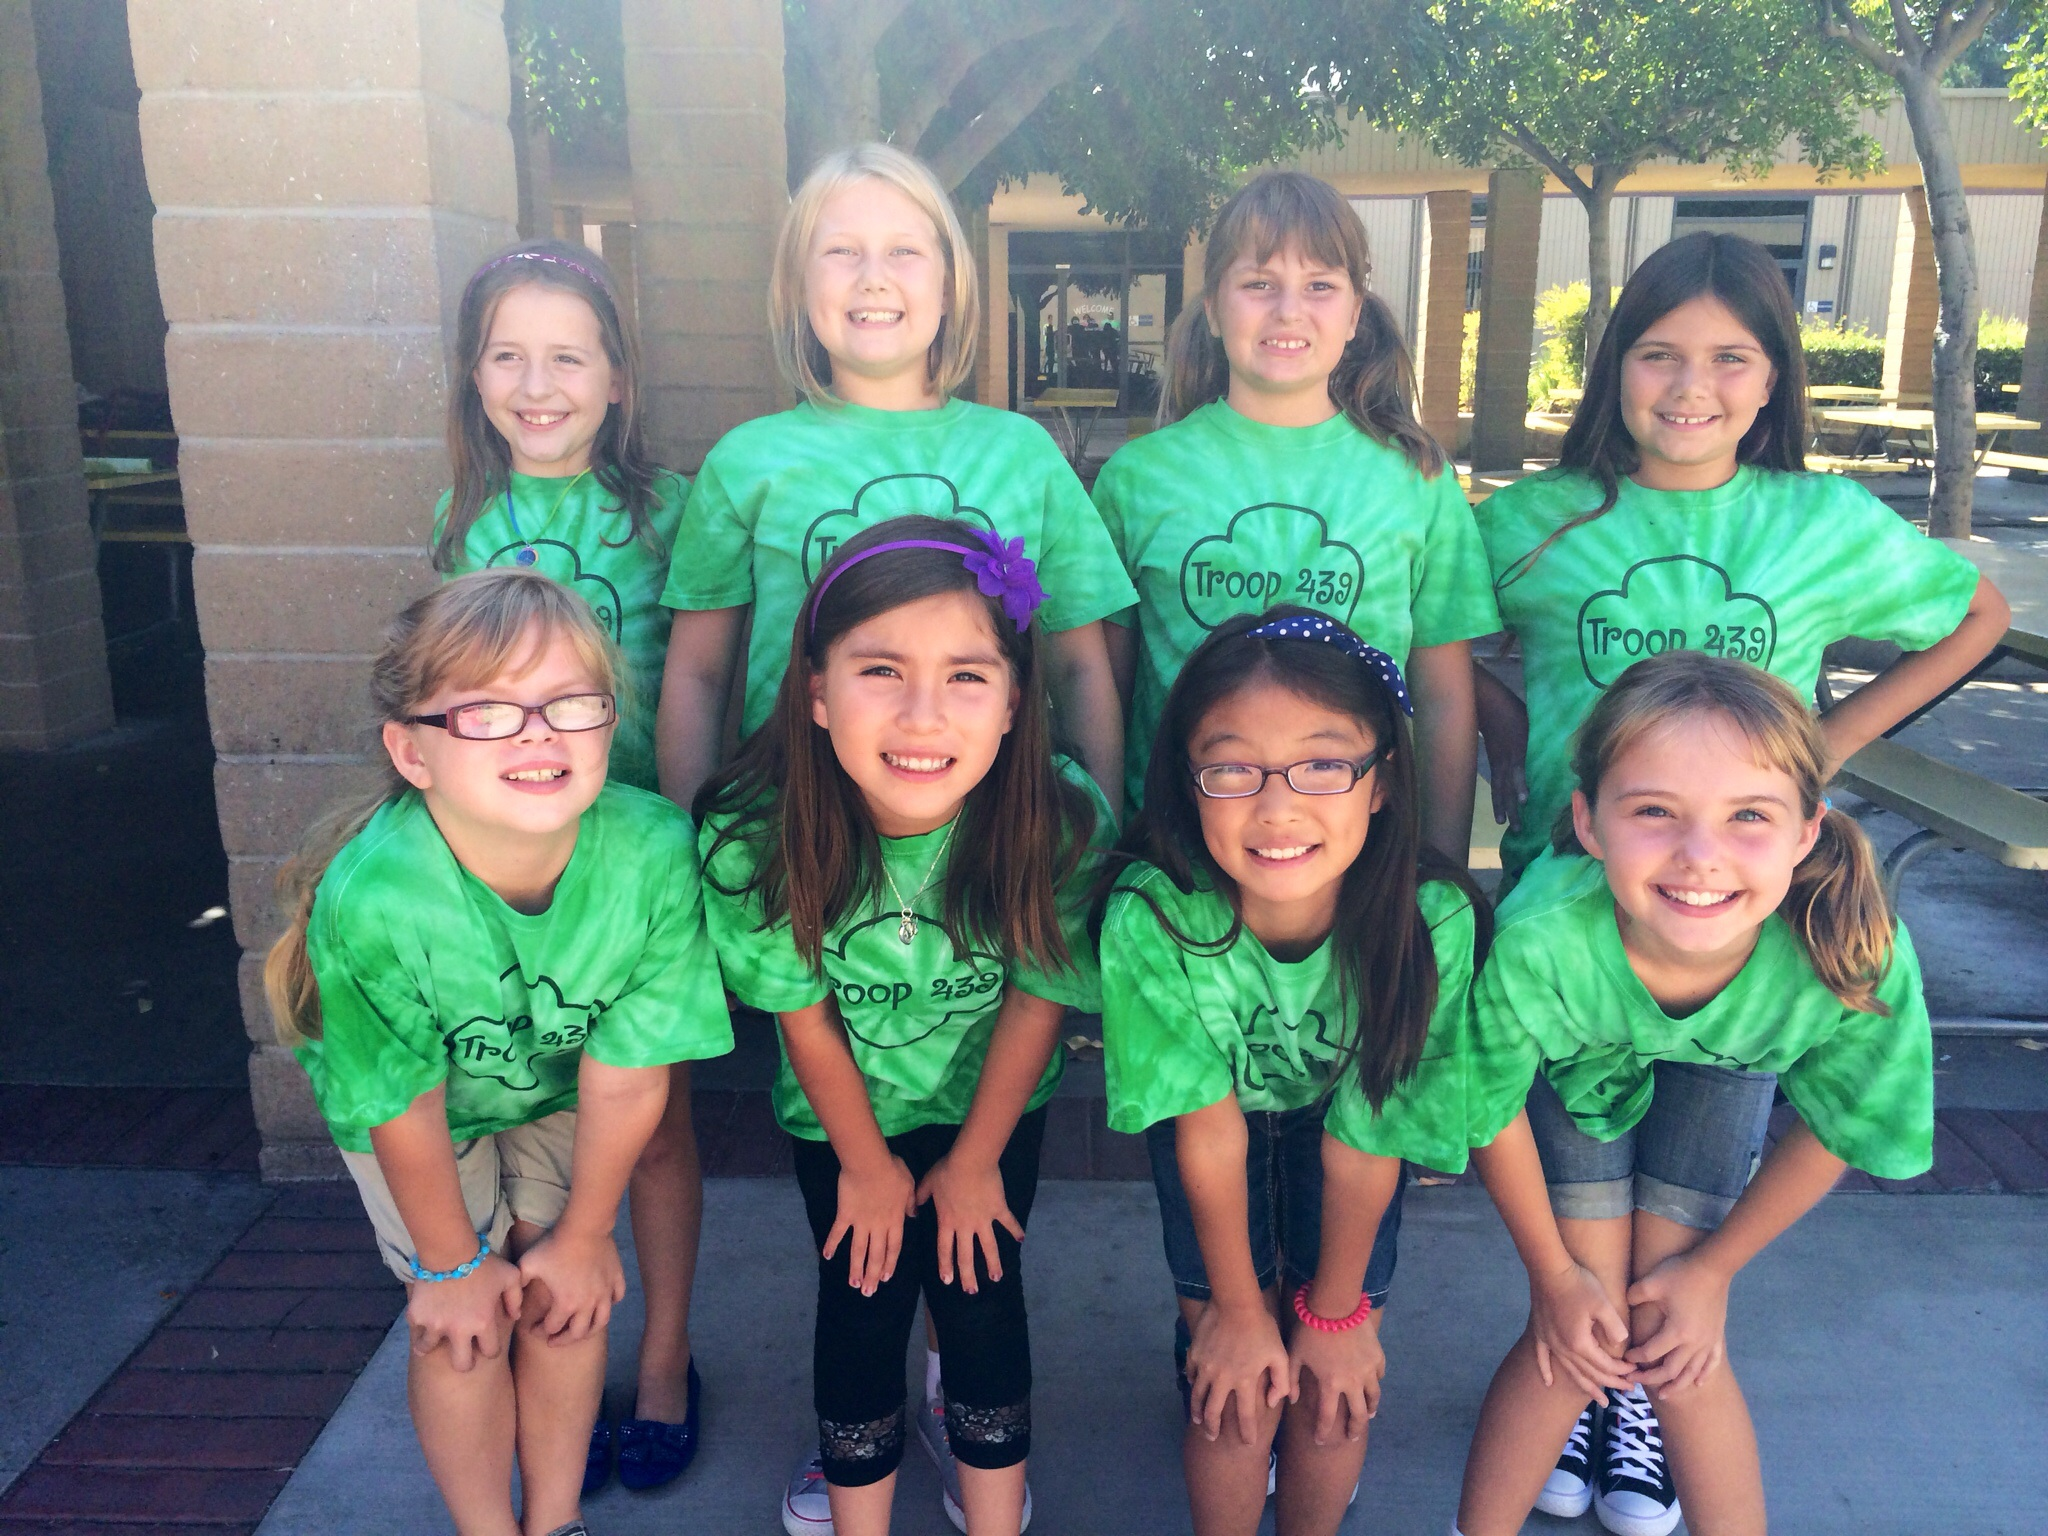 Custom t shirts for girl scout troop 439 shirt design ideas for Girl scout troop shirts